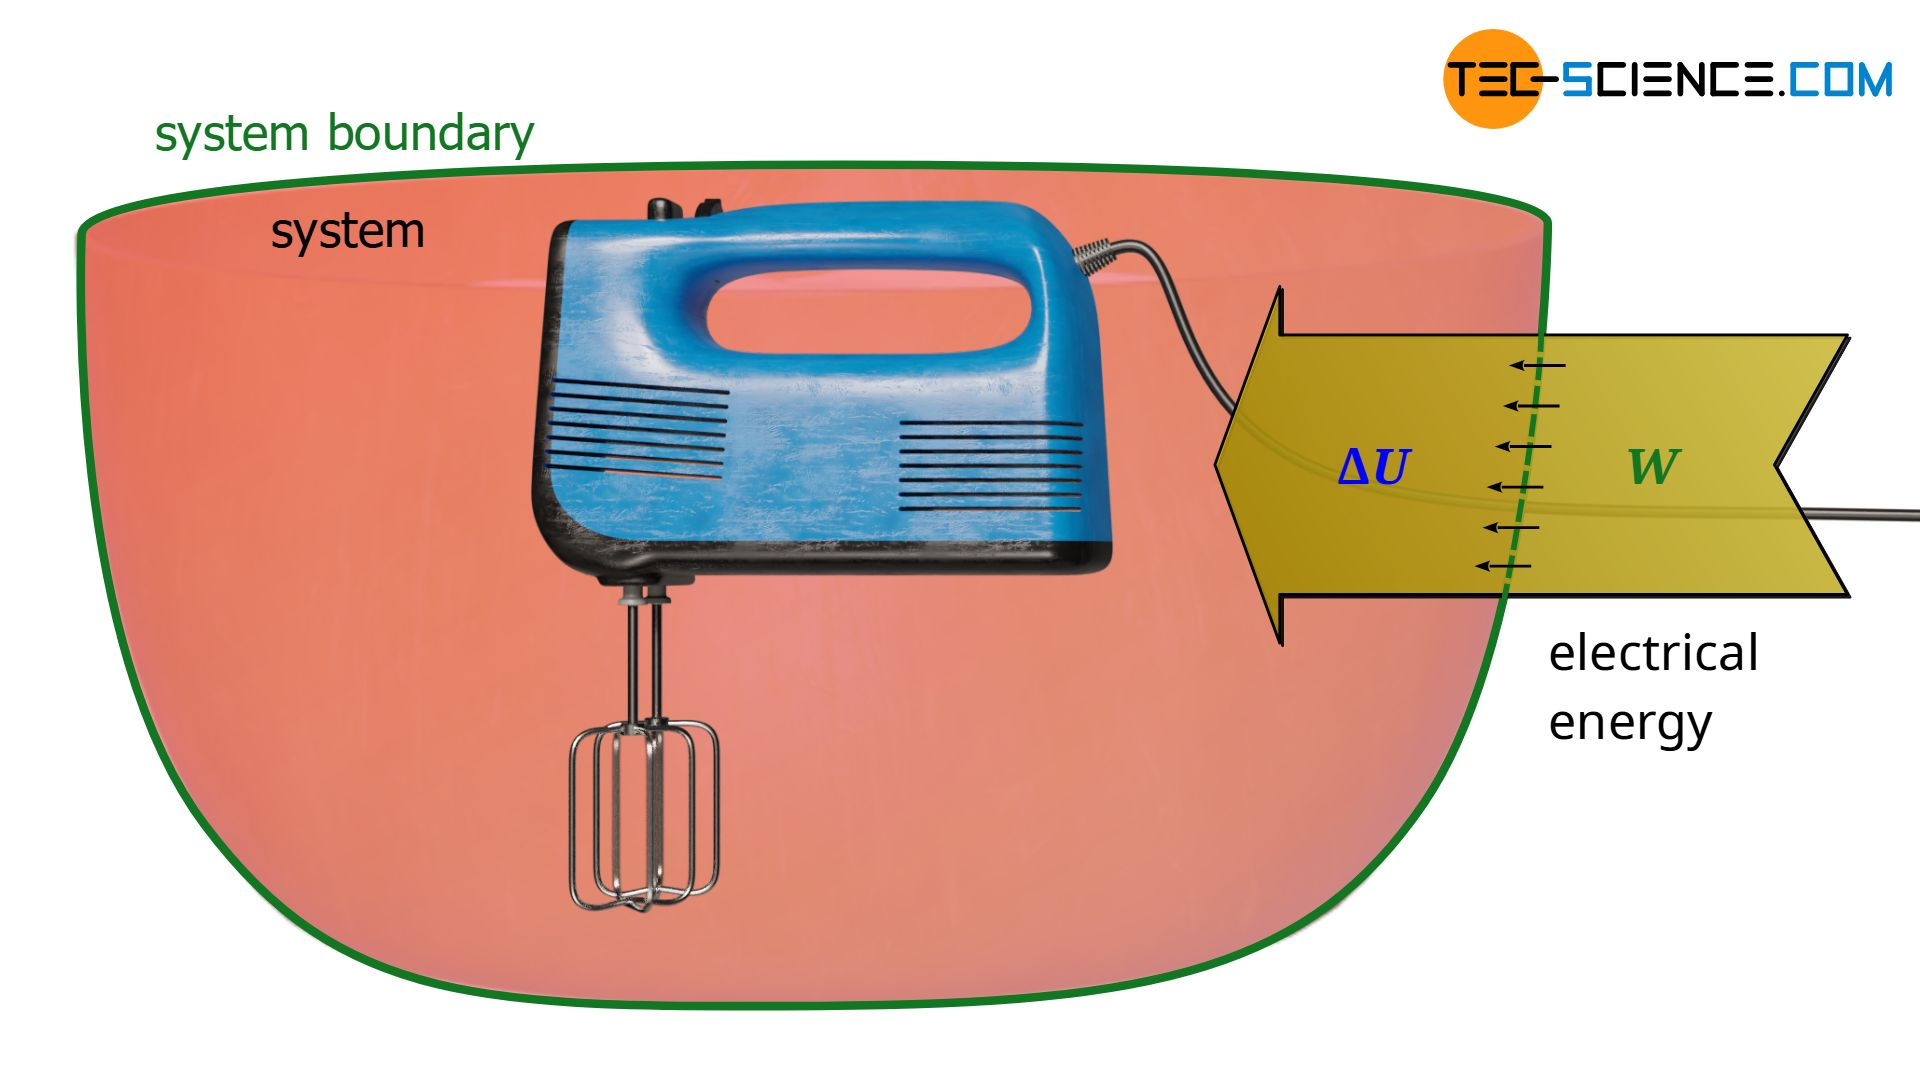 Dissipation of electrical energy